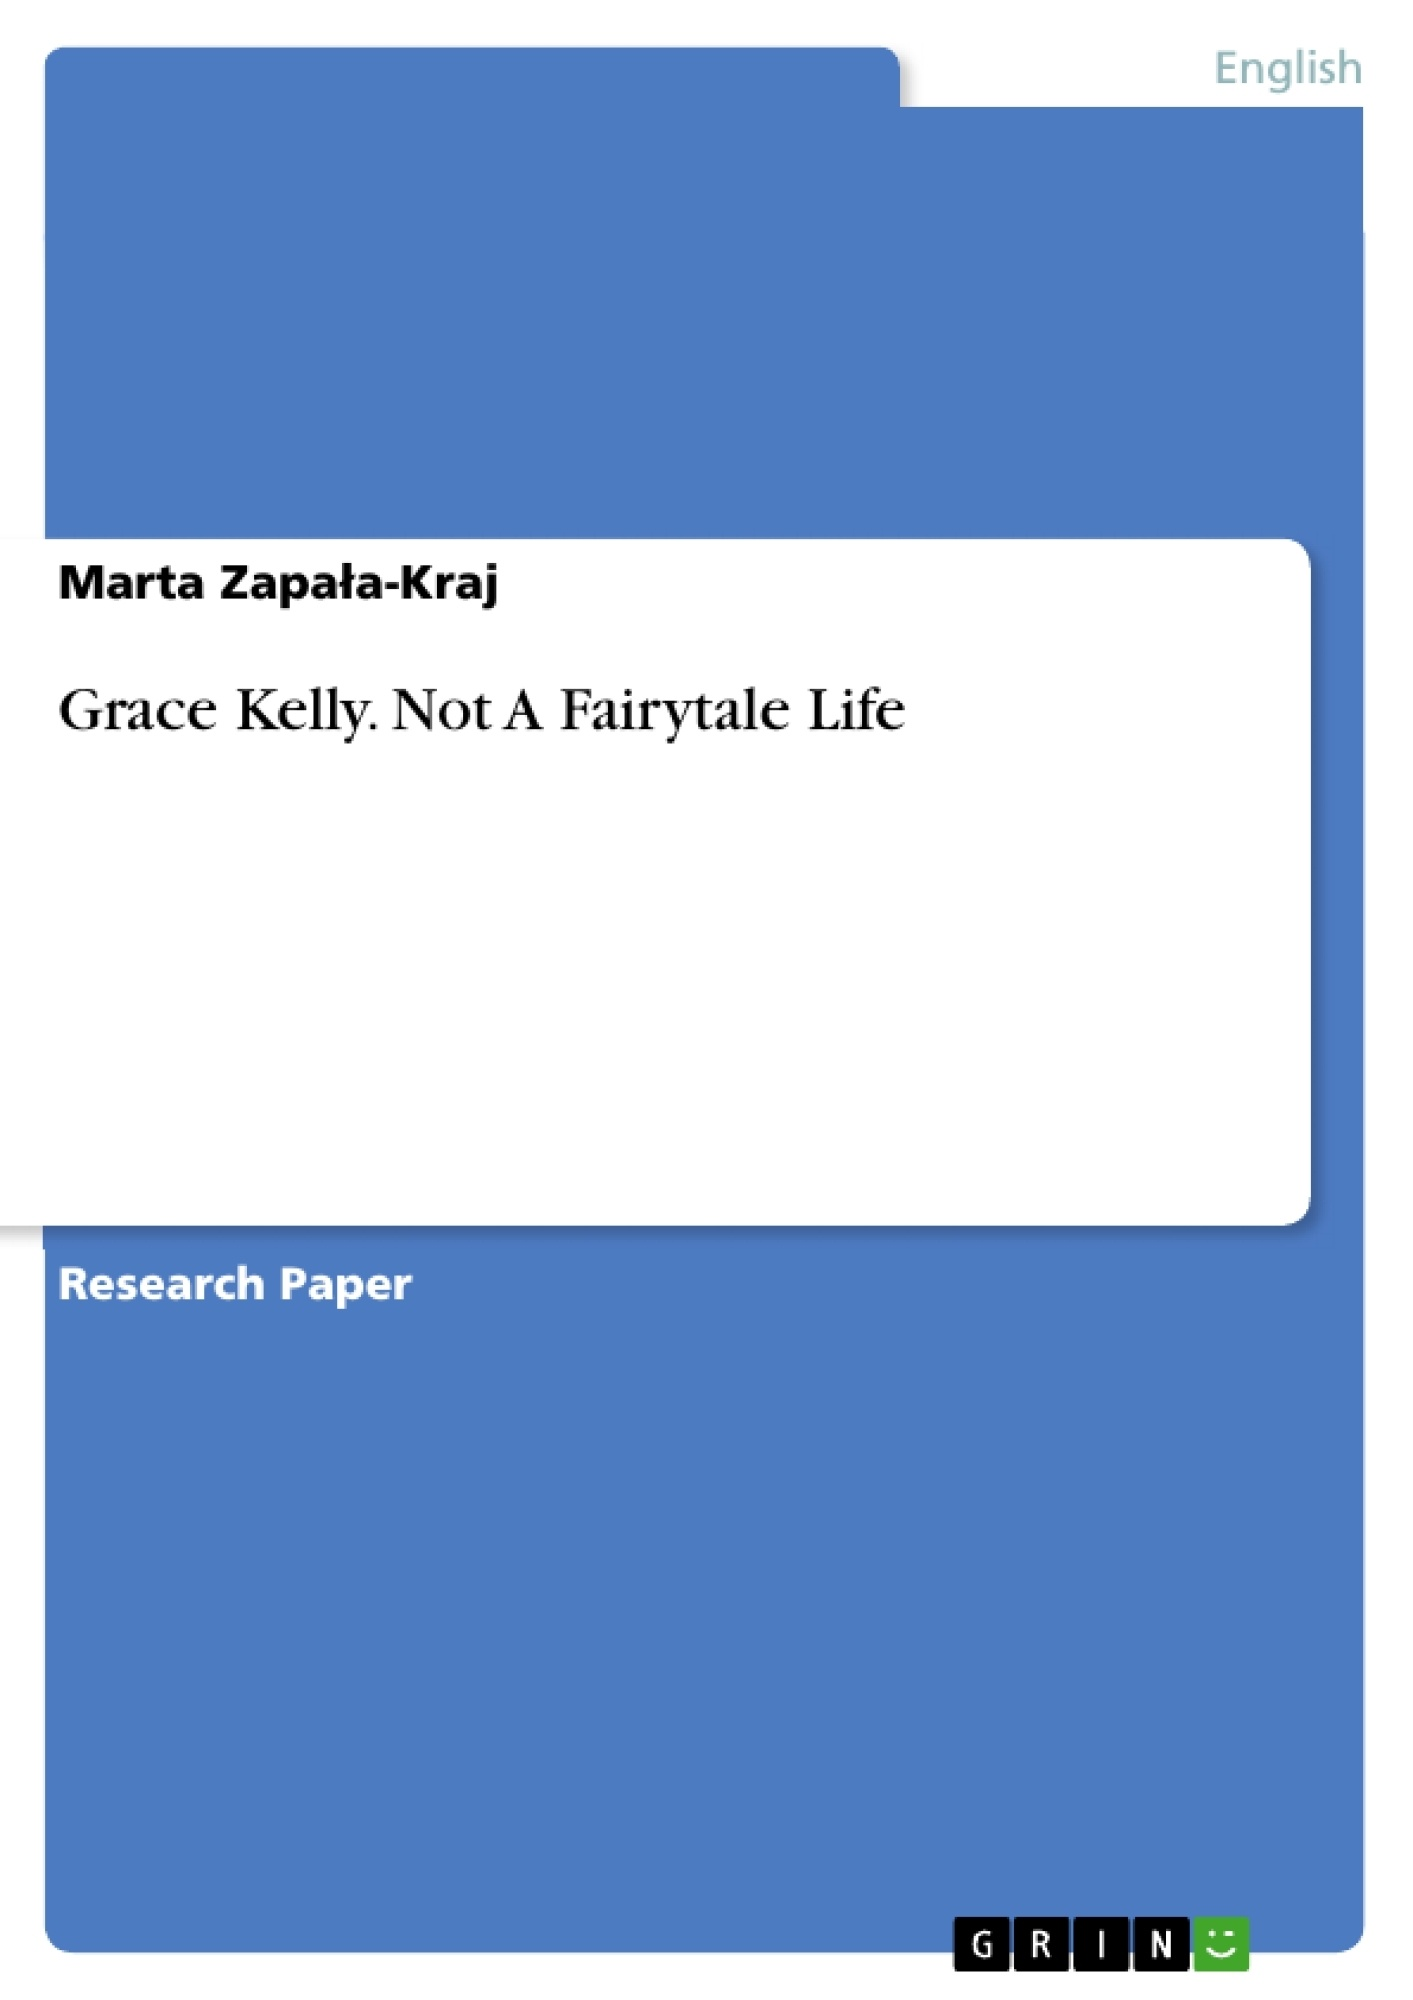 Title: Grace Kelly. Not A Fairytale Life